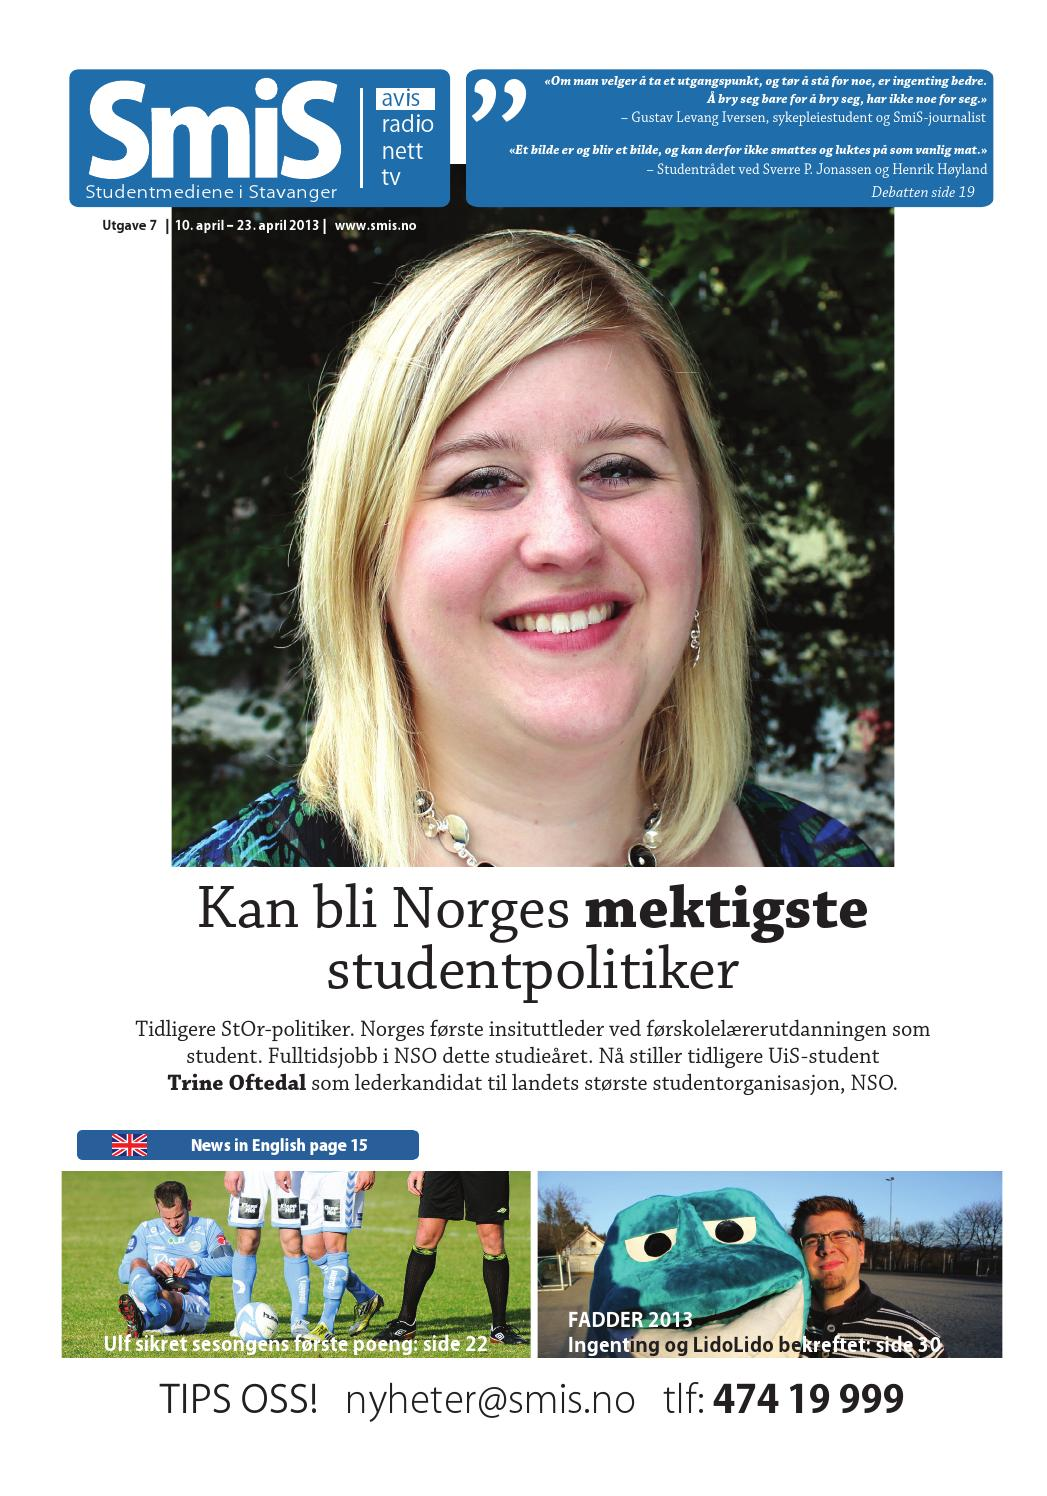 kan undervise assistent dating student